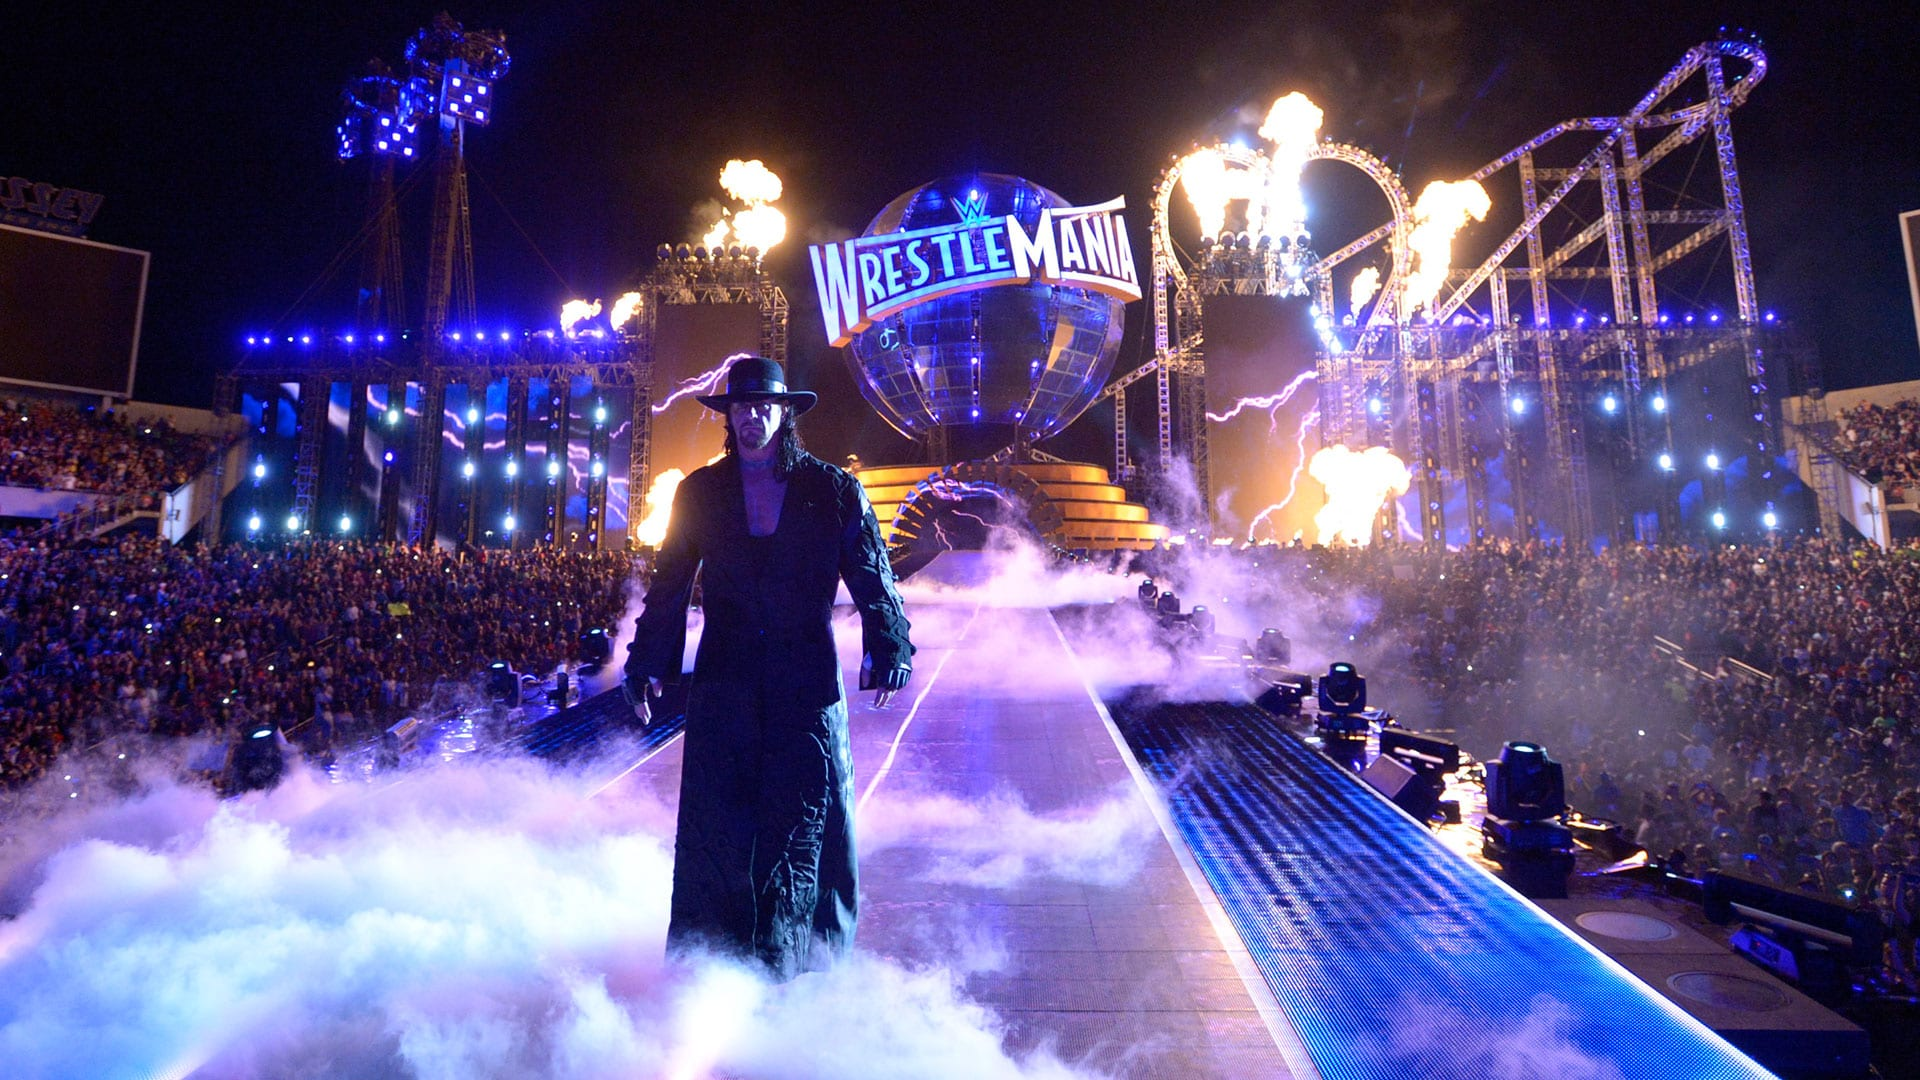 The Undertaker WrestleMania 33 Entrance